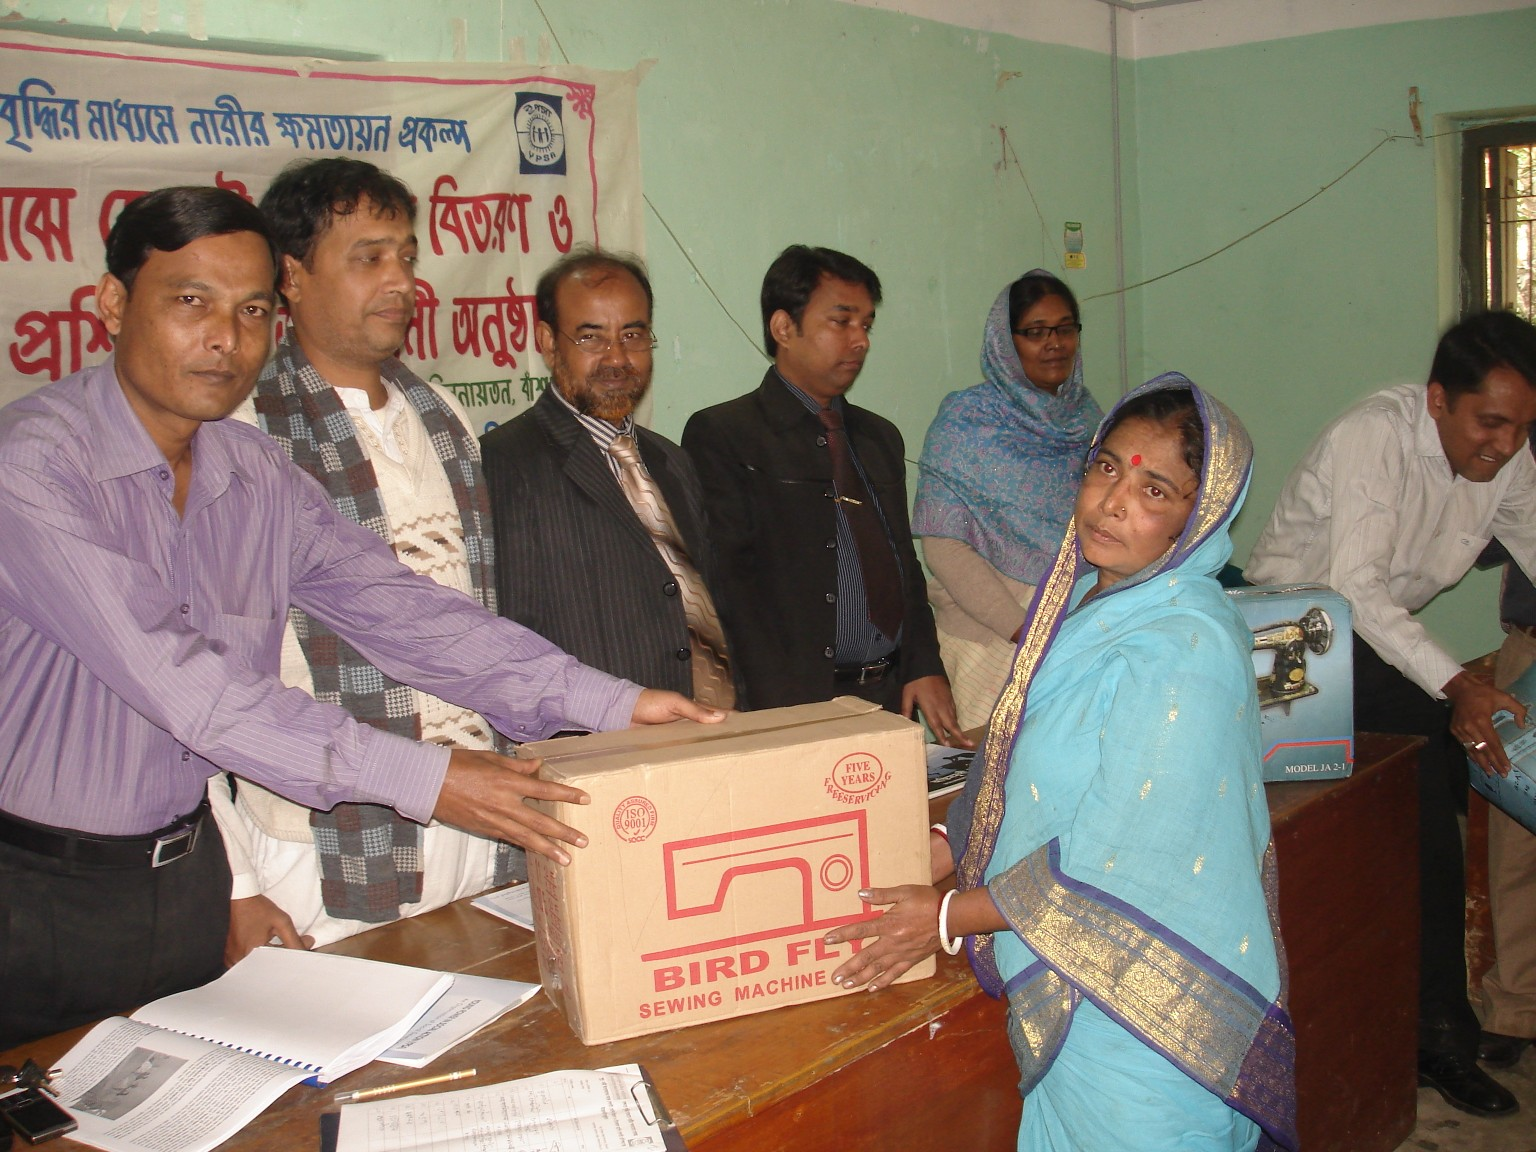 Sewing Machine Distribution ceremony